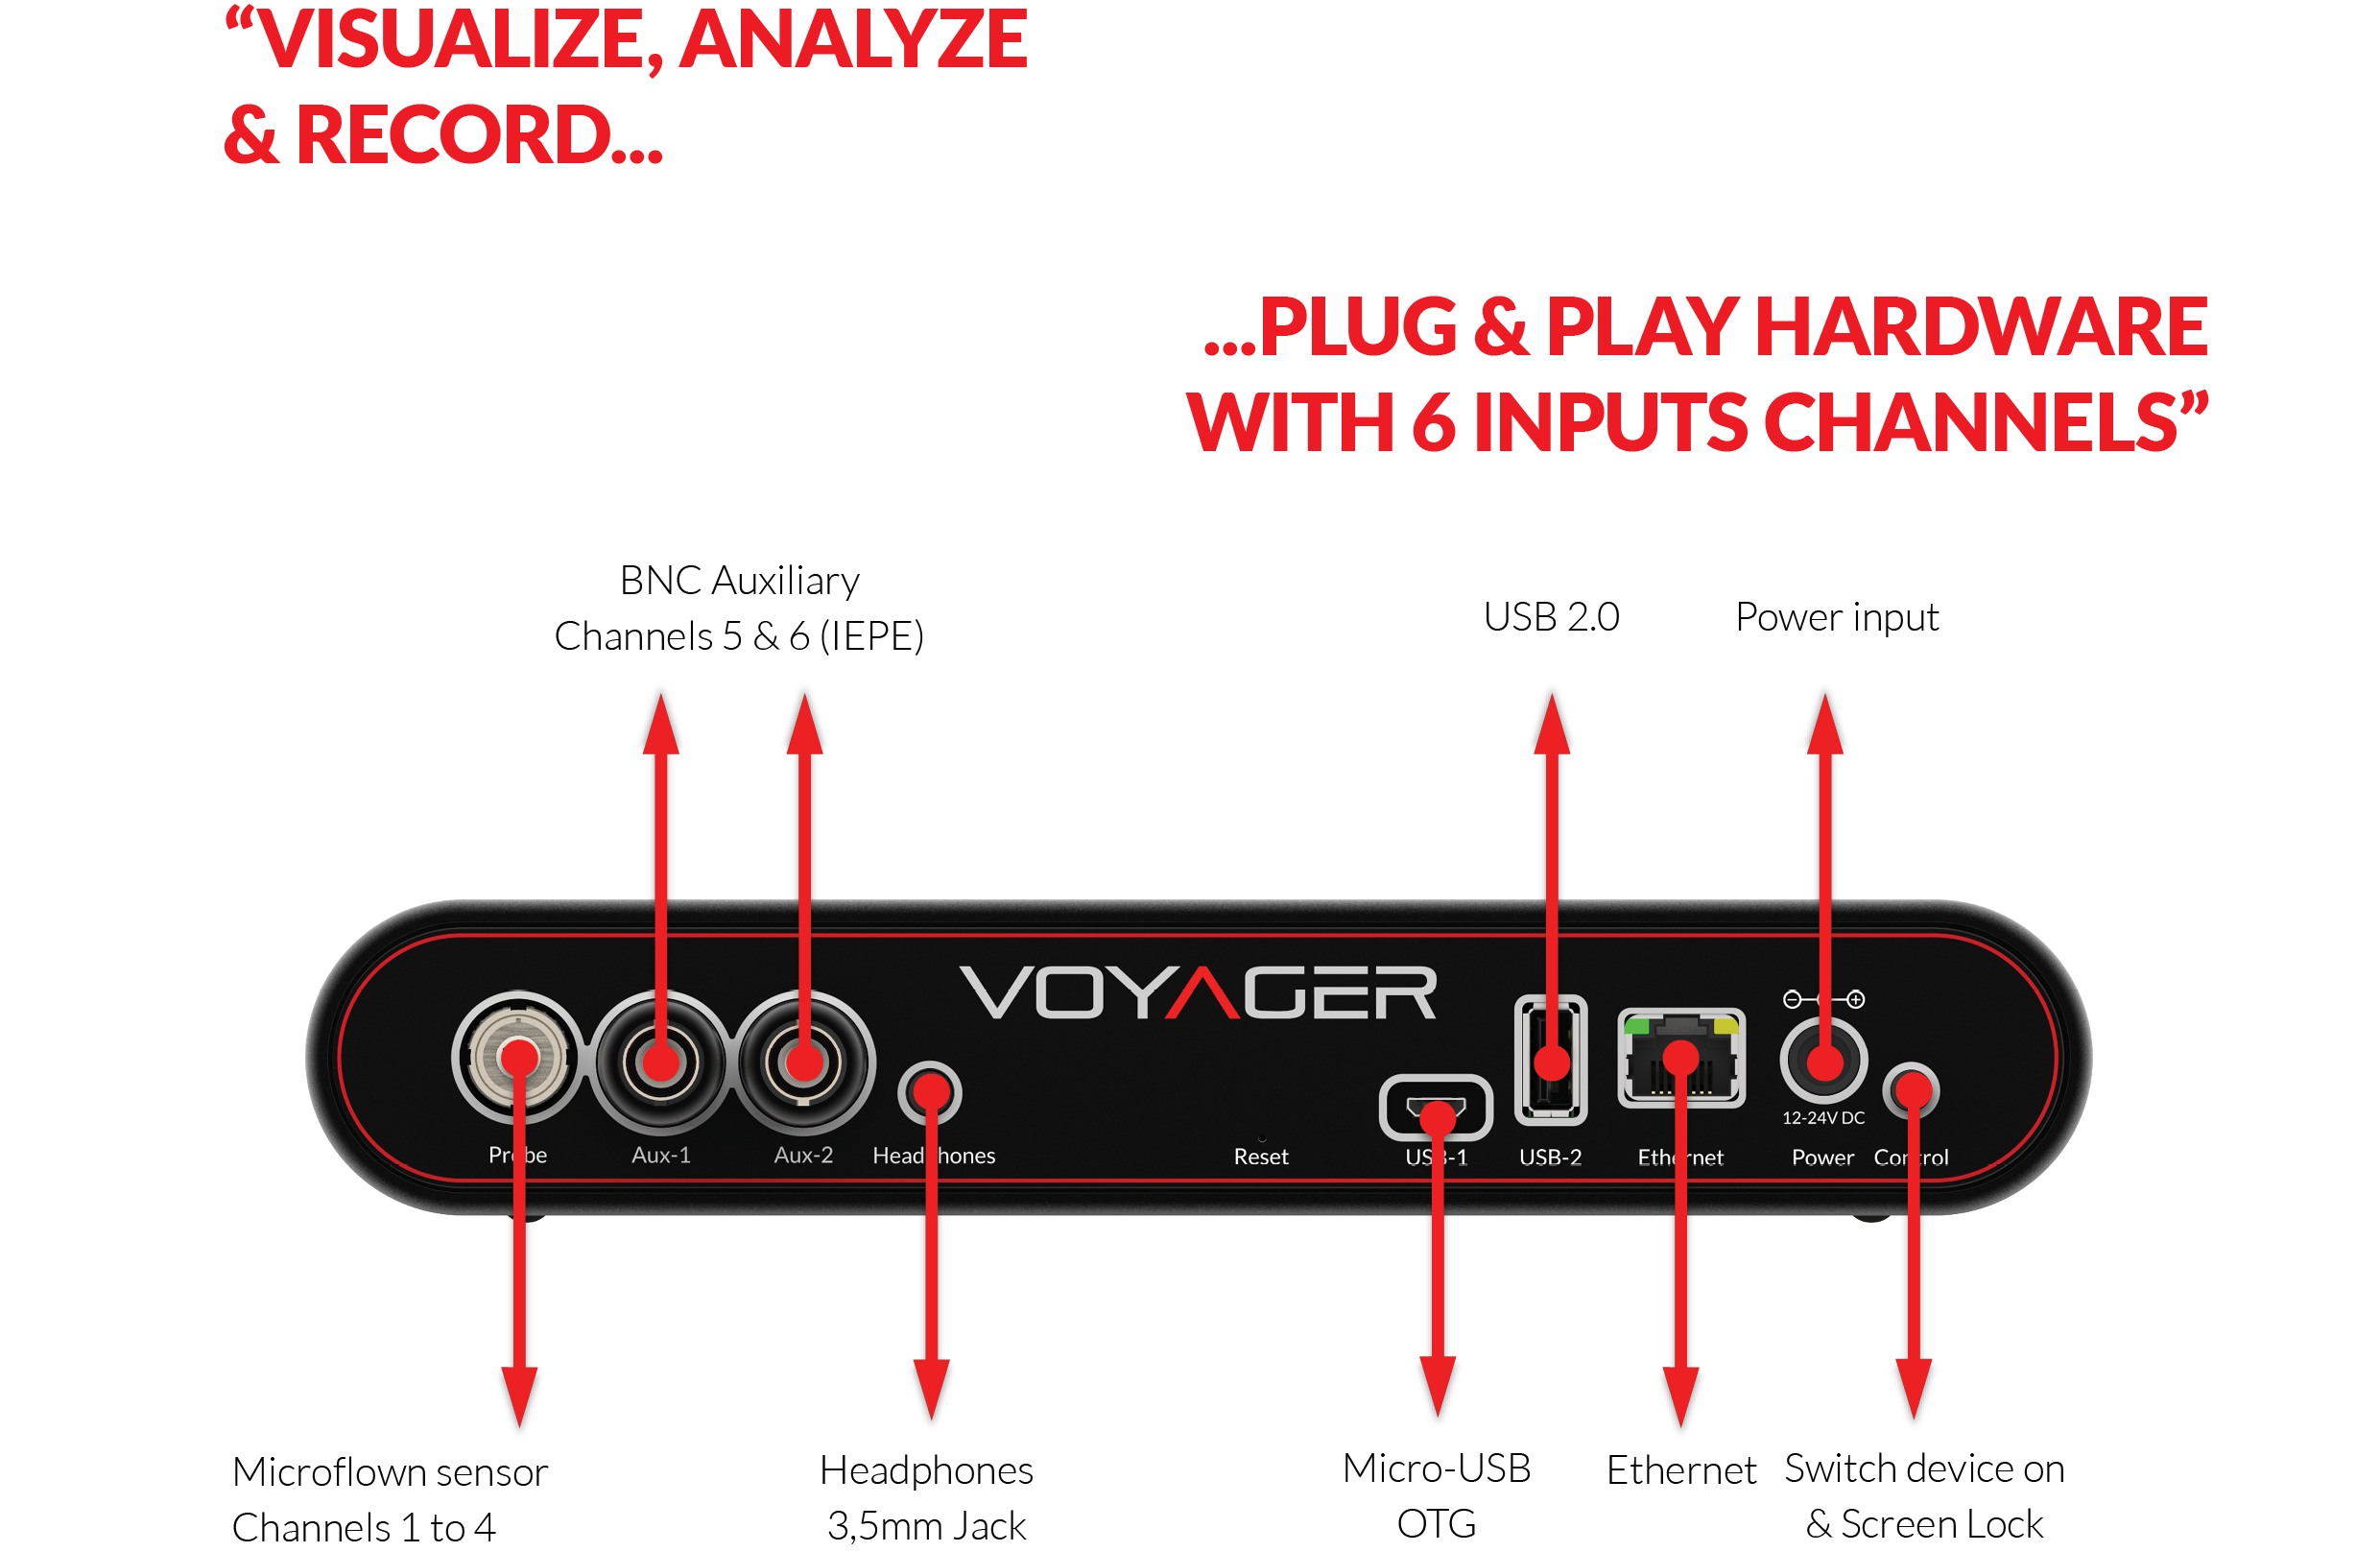 voyager-interface.png